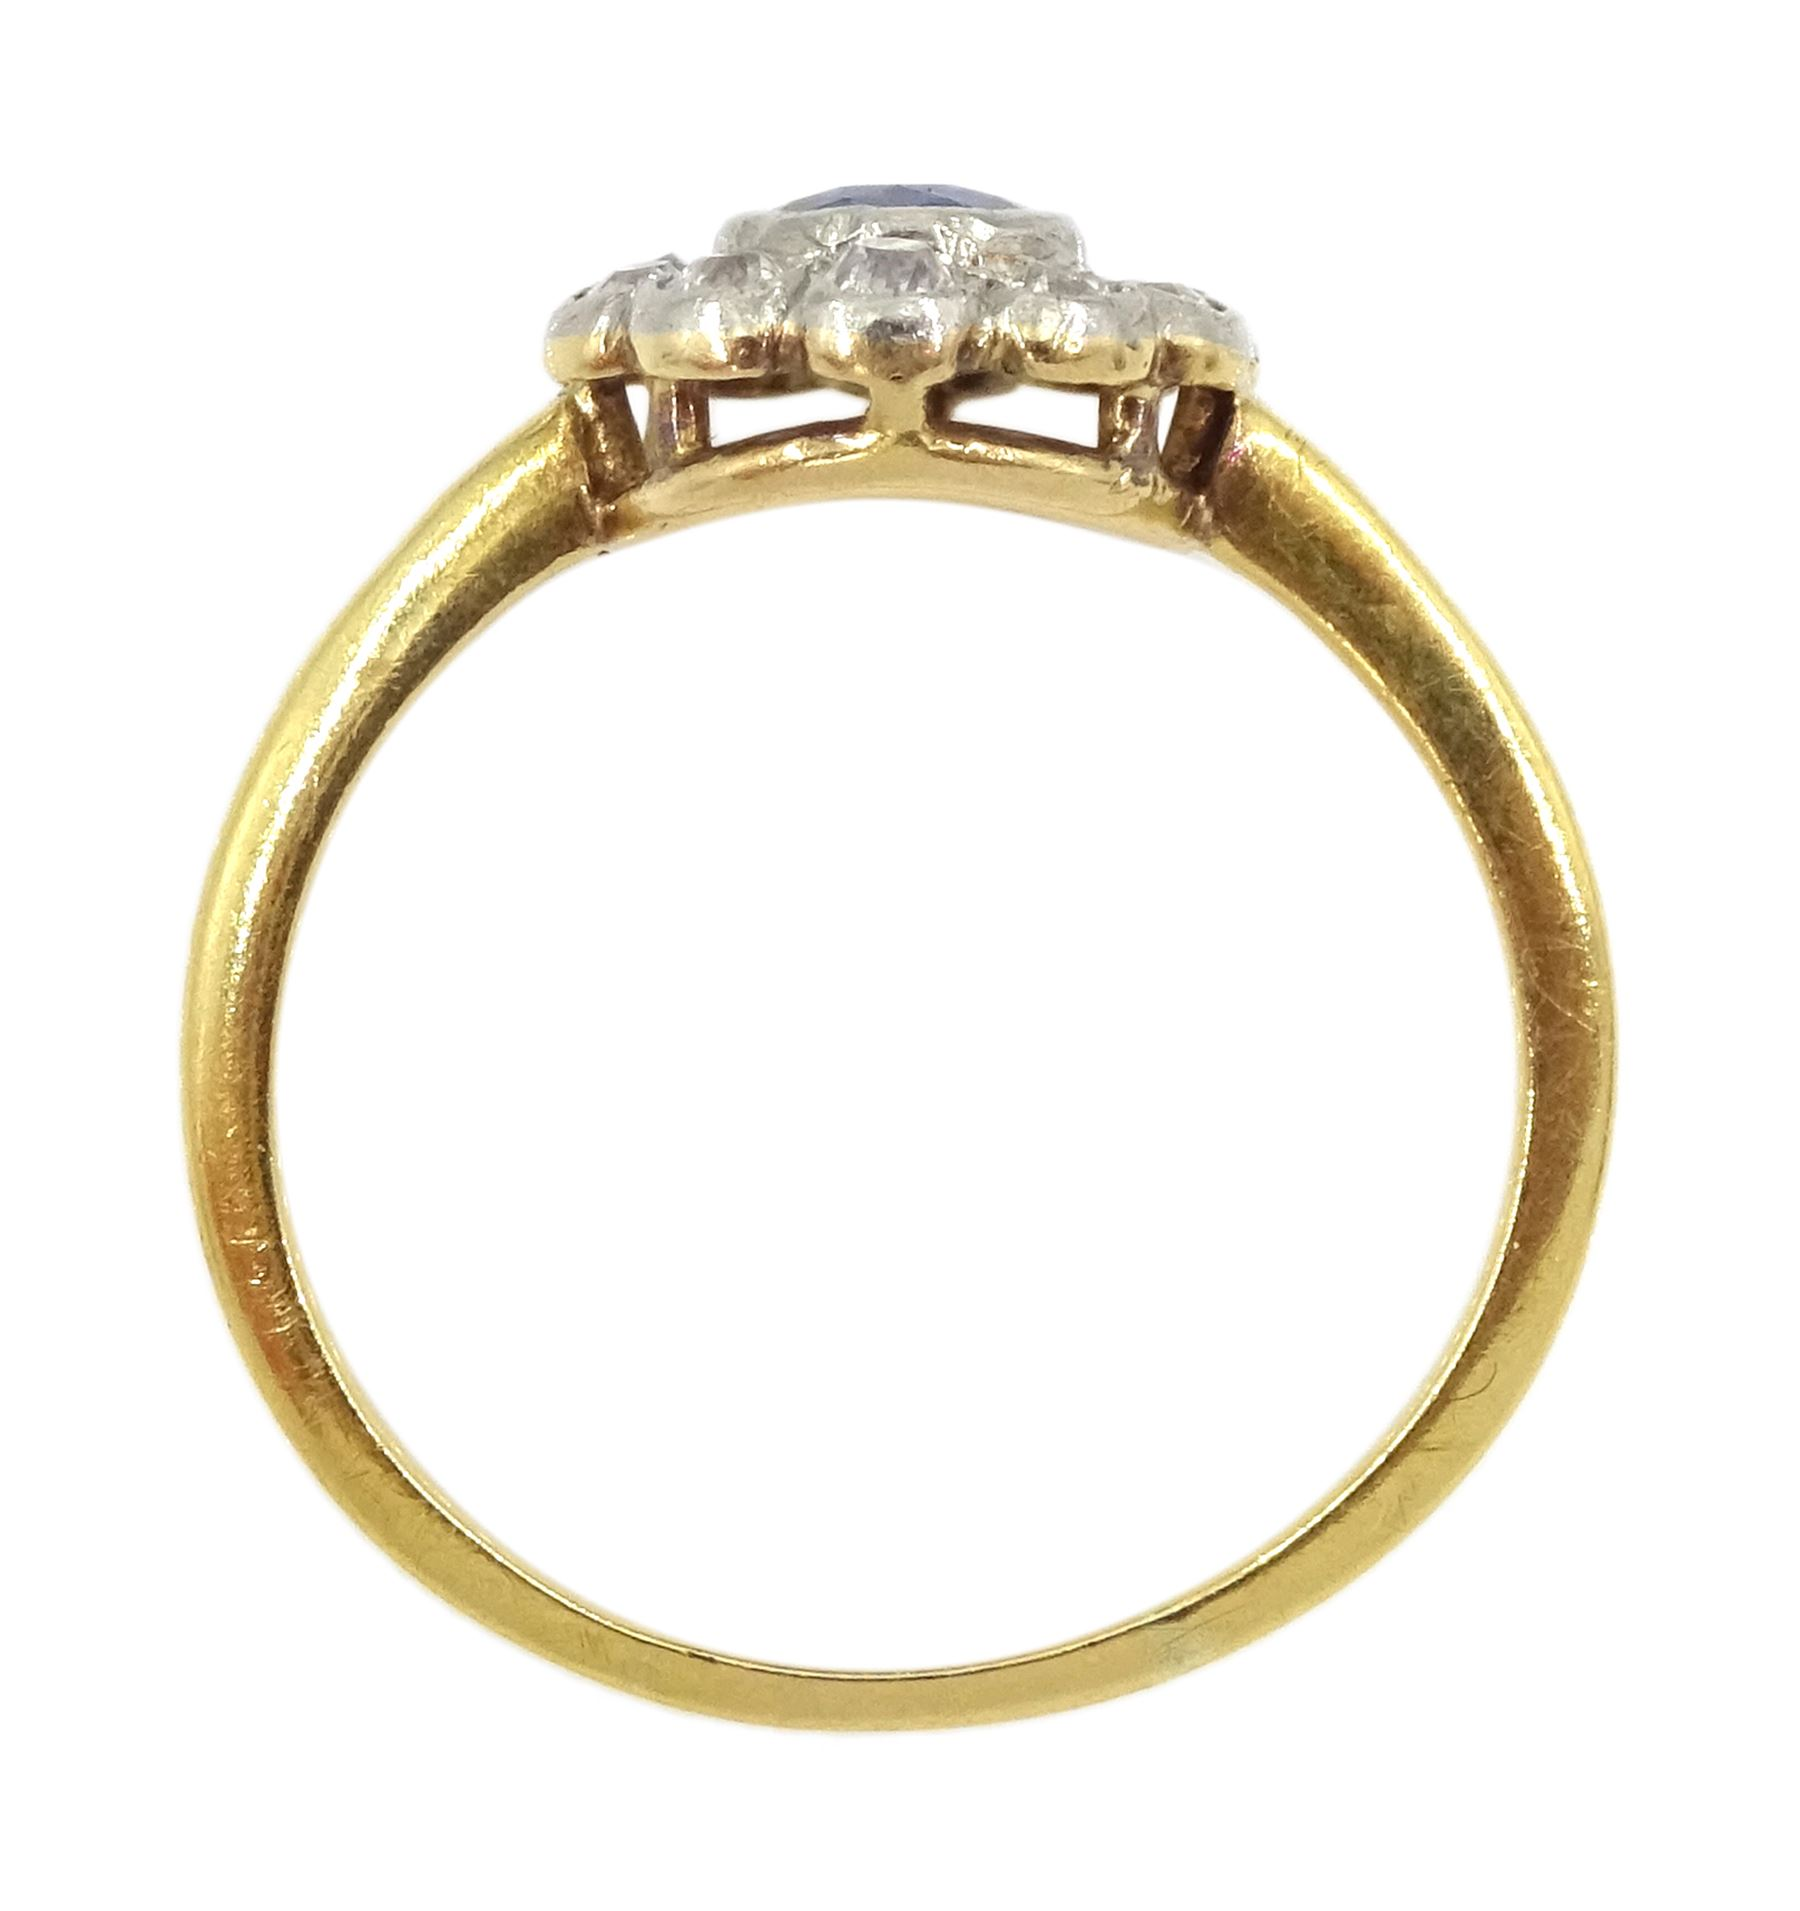 18ct gold round sapphire and old cut diamond cluster ring - Image 4 of 4